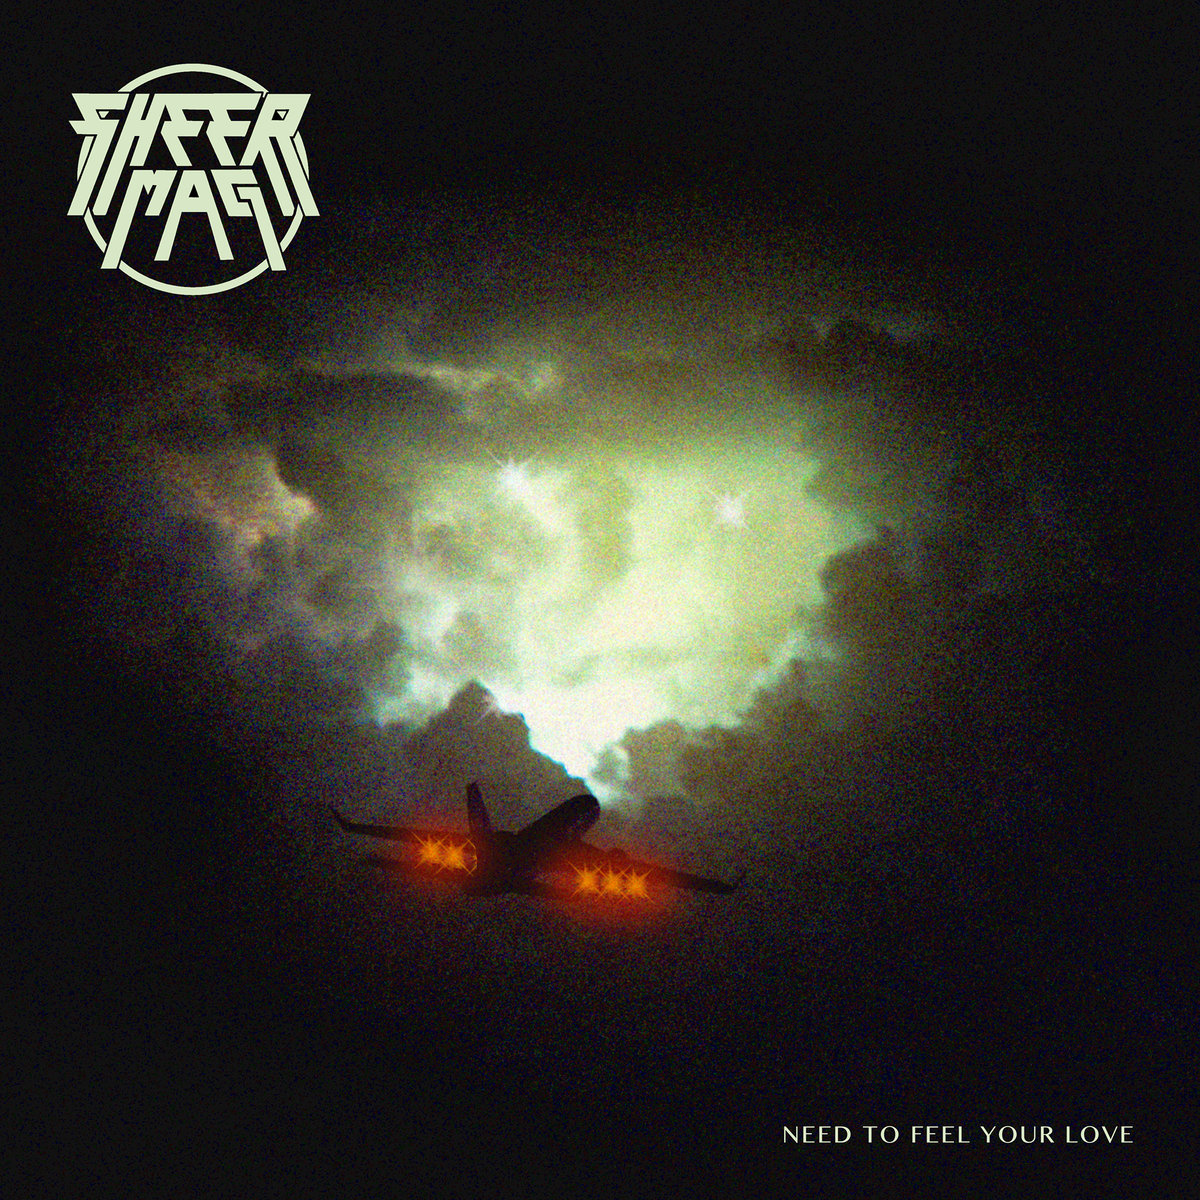 Review of 'Need To Feel Your Love' by Sheer Mag